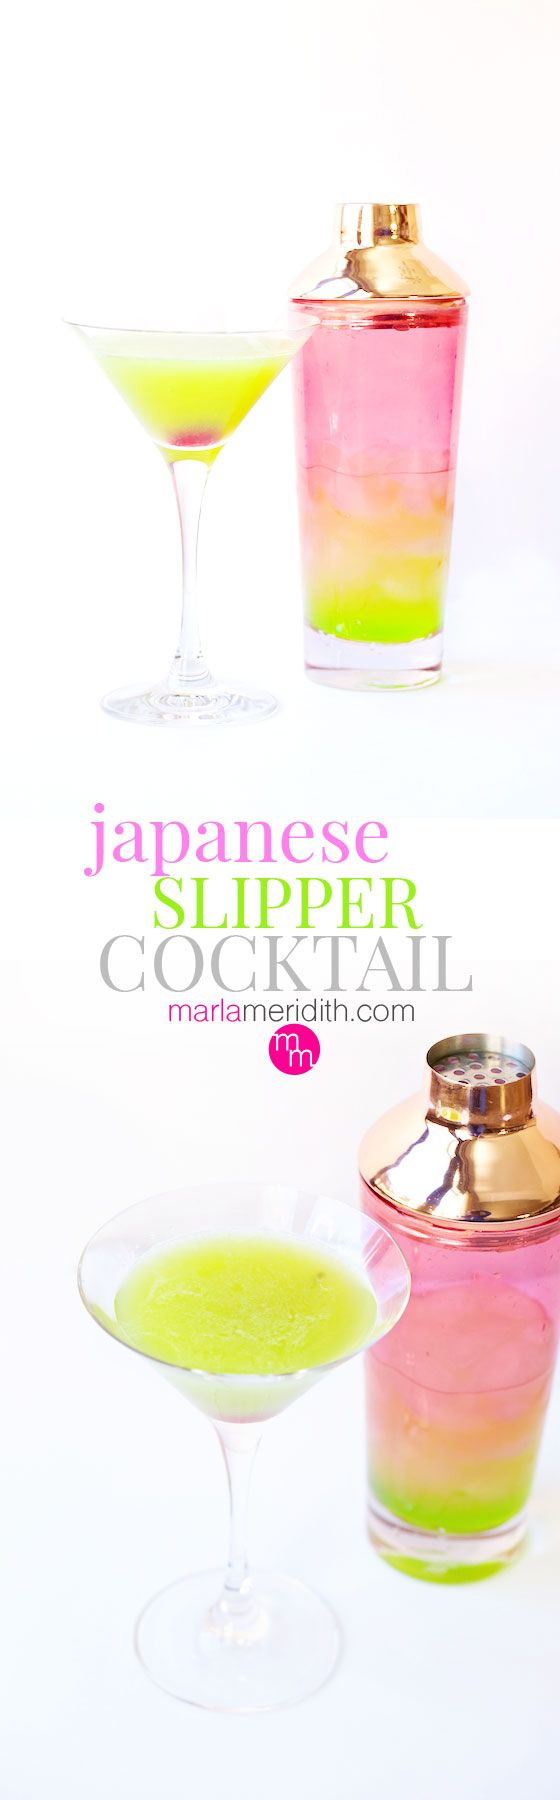 How pretty & festive is this Japanese Slipper Cocktail? Get the recipe on MarlaMeridith.com ( @marlameridith )